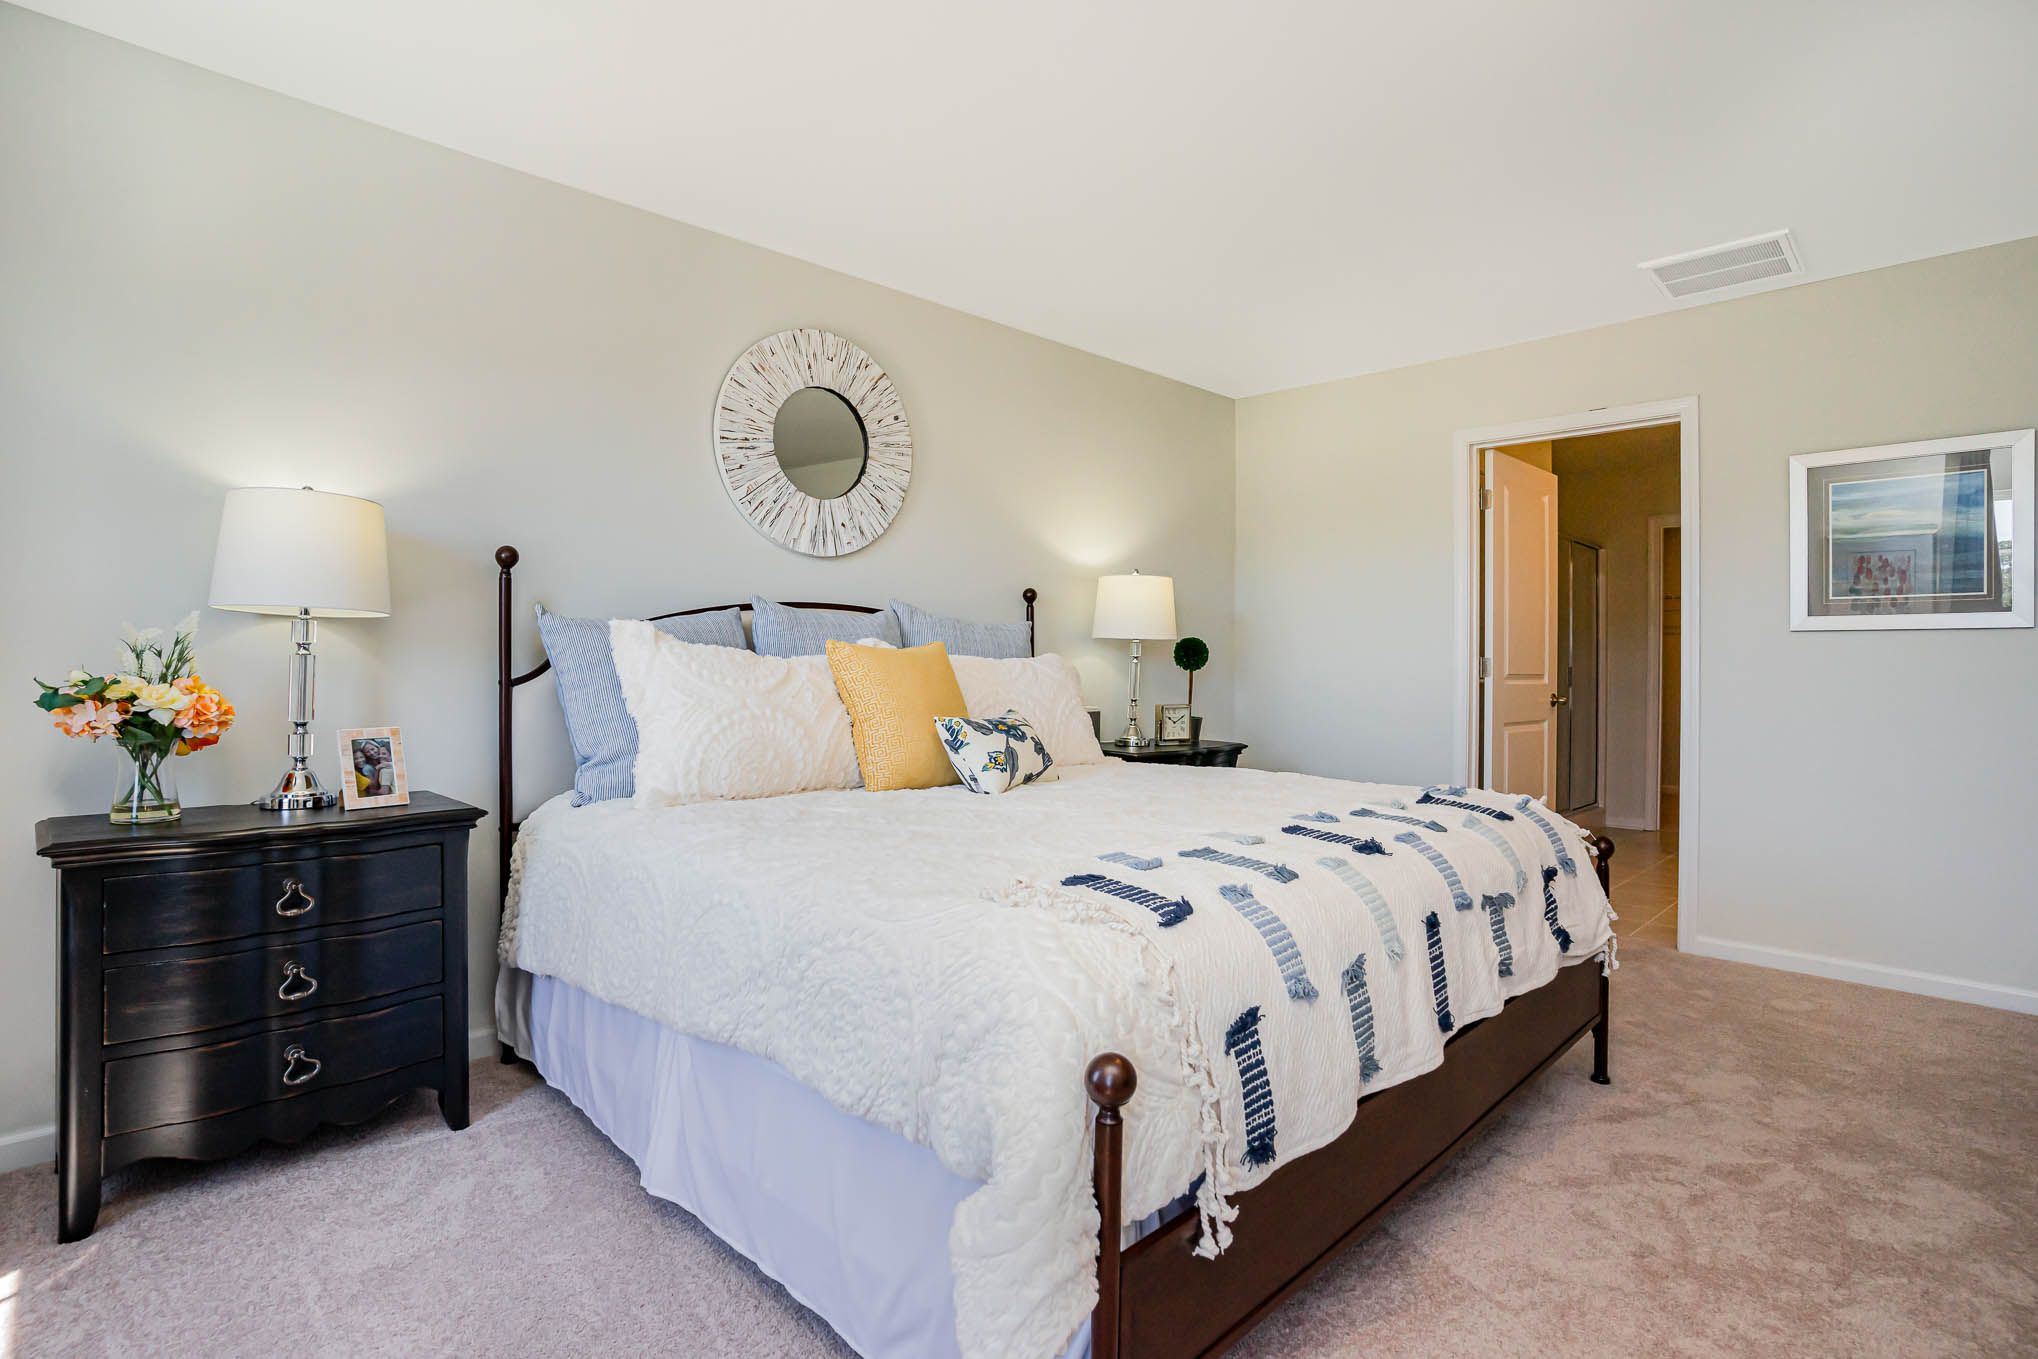 Bedroom featured in the PENWELL By D.R. Horton in Myrtle Beach, SC